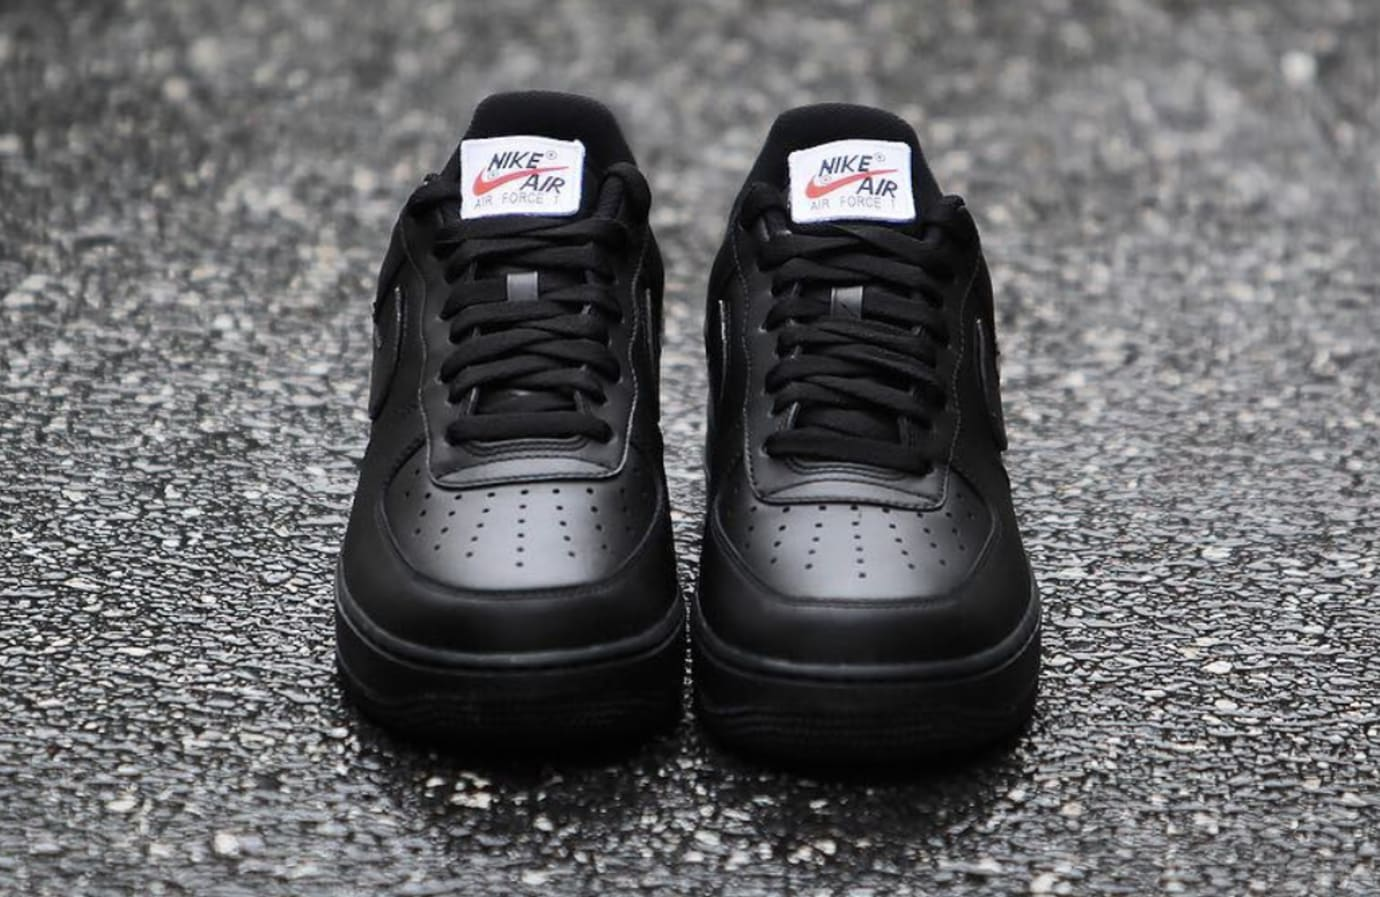 Nike Air Force 1 'All Star/Black' (Front)